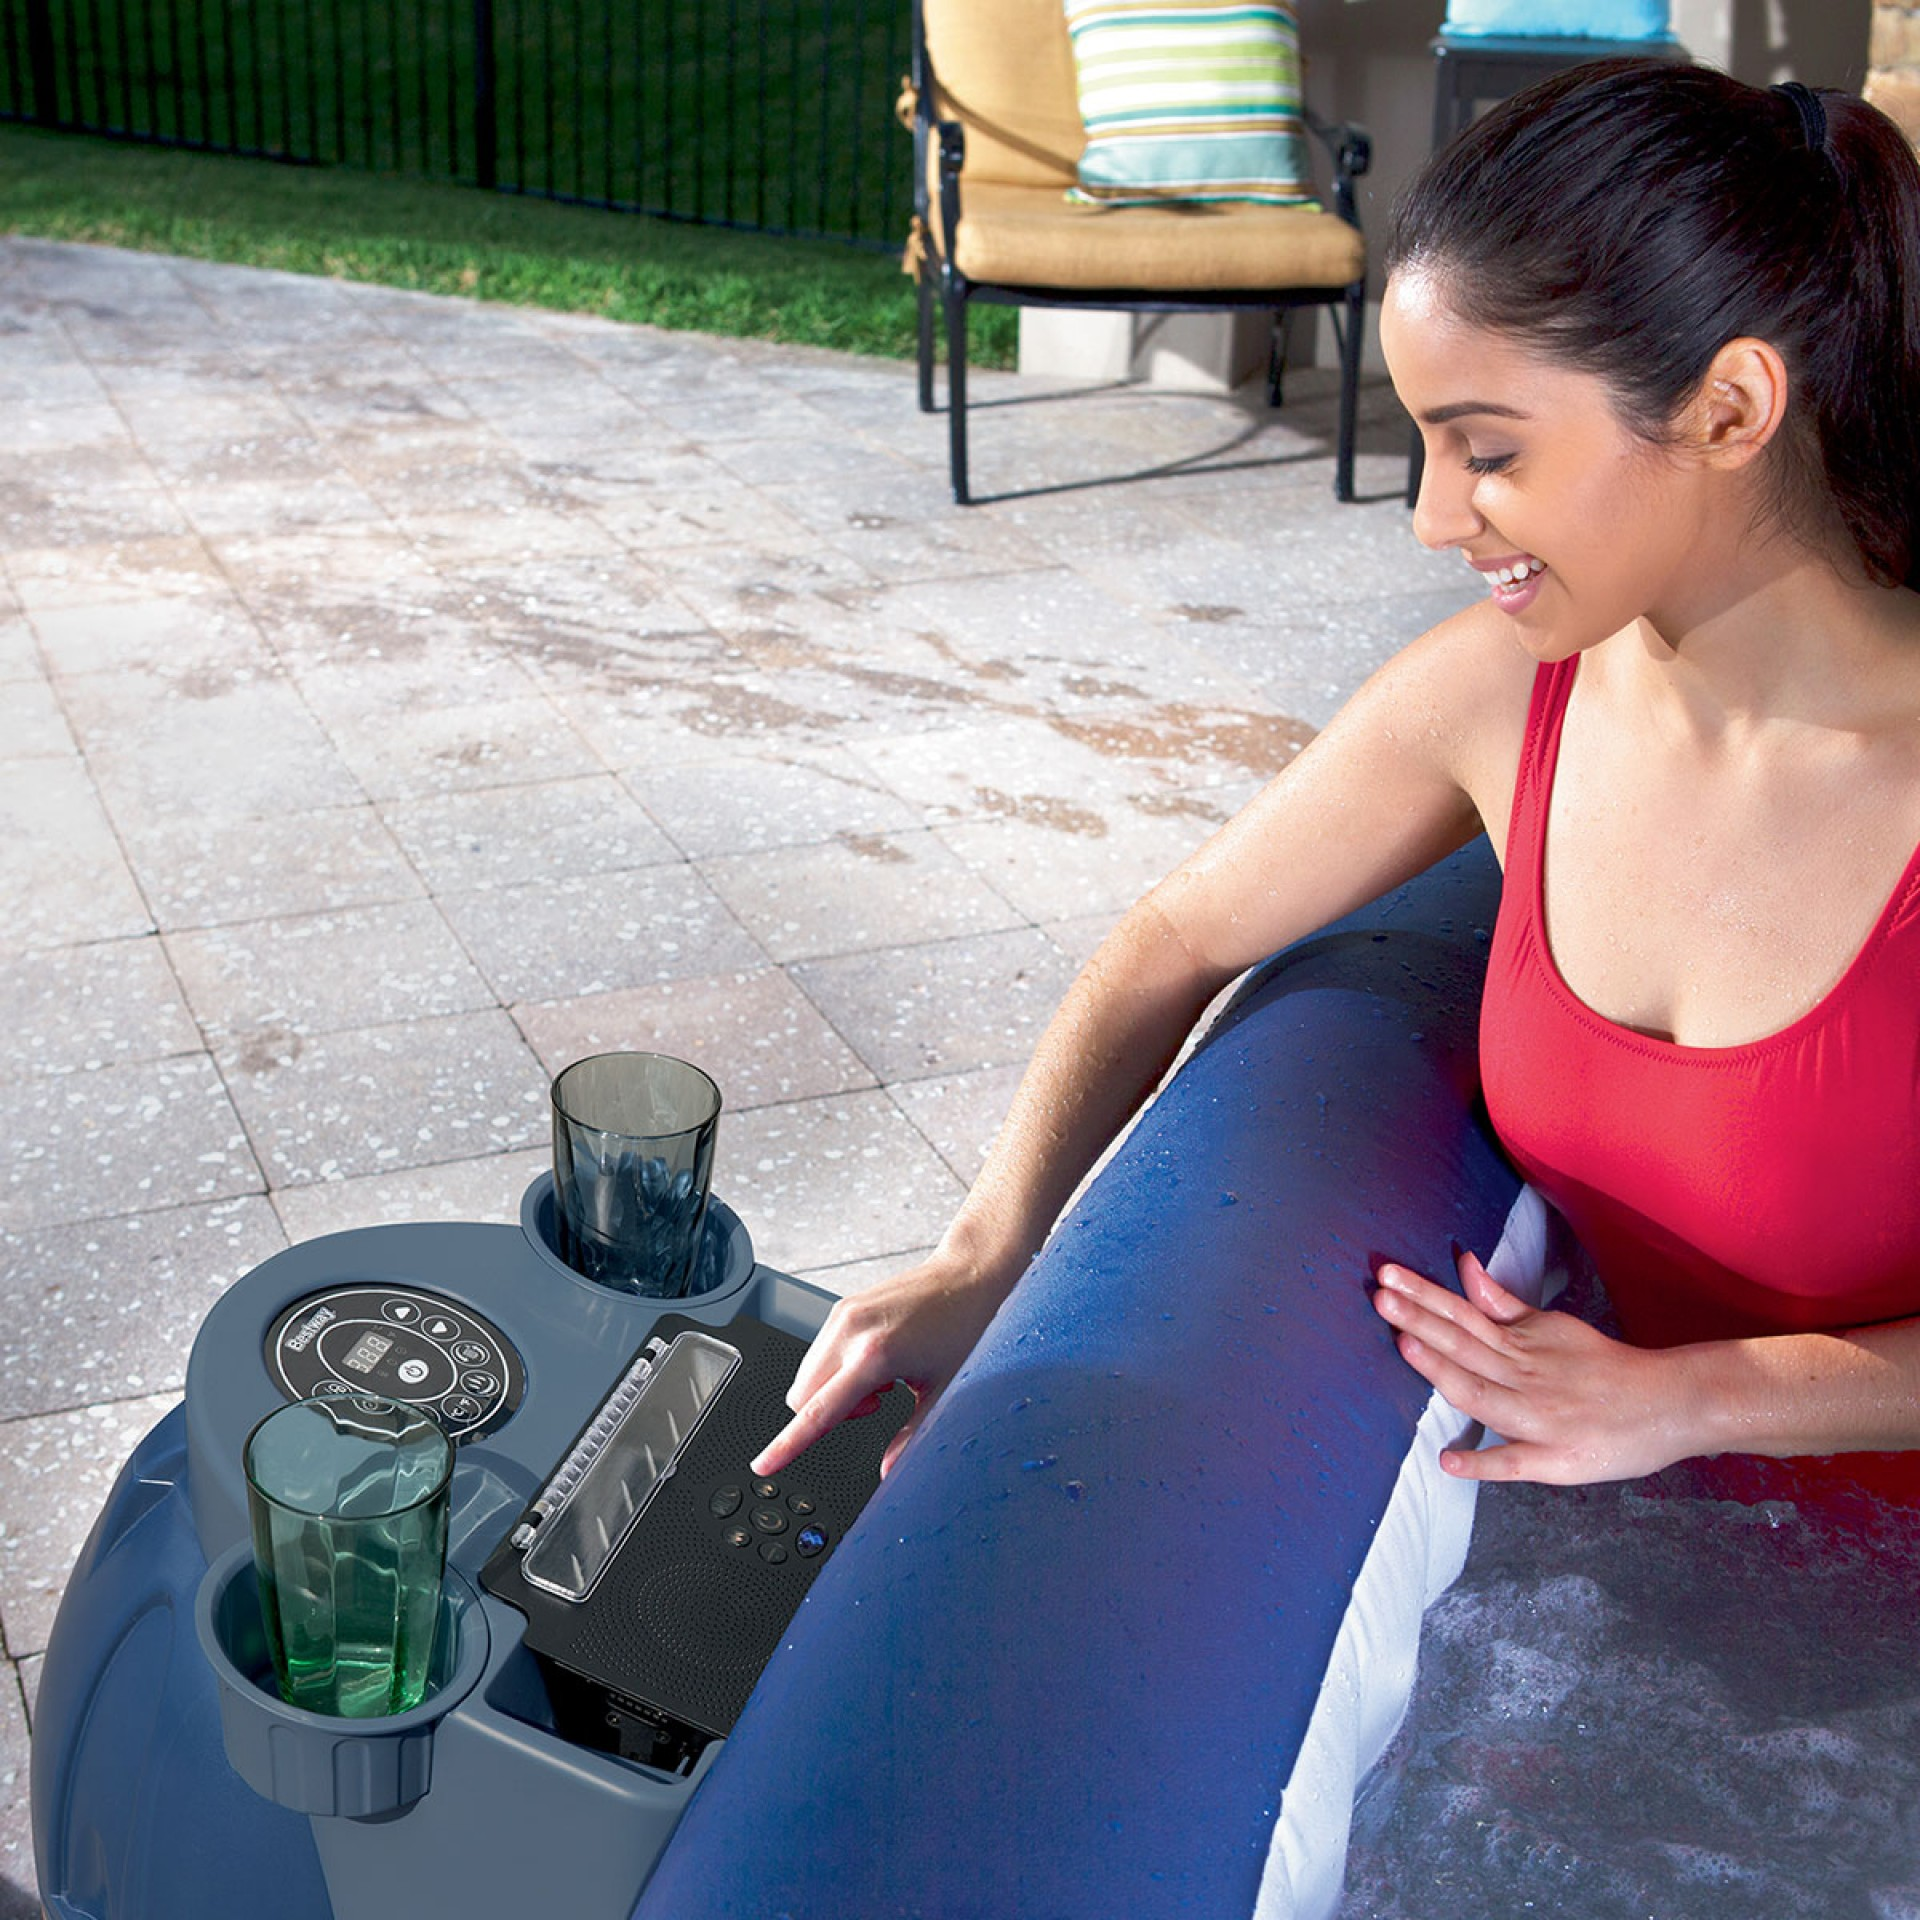 Lay Z Spa Bluetooth Speaker System - Hot Tub Hire - www.bigbouncybriers.co